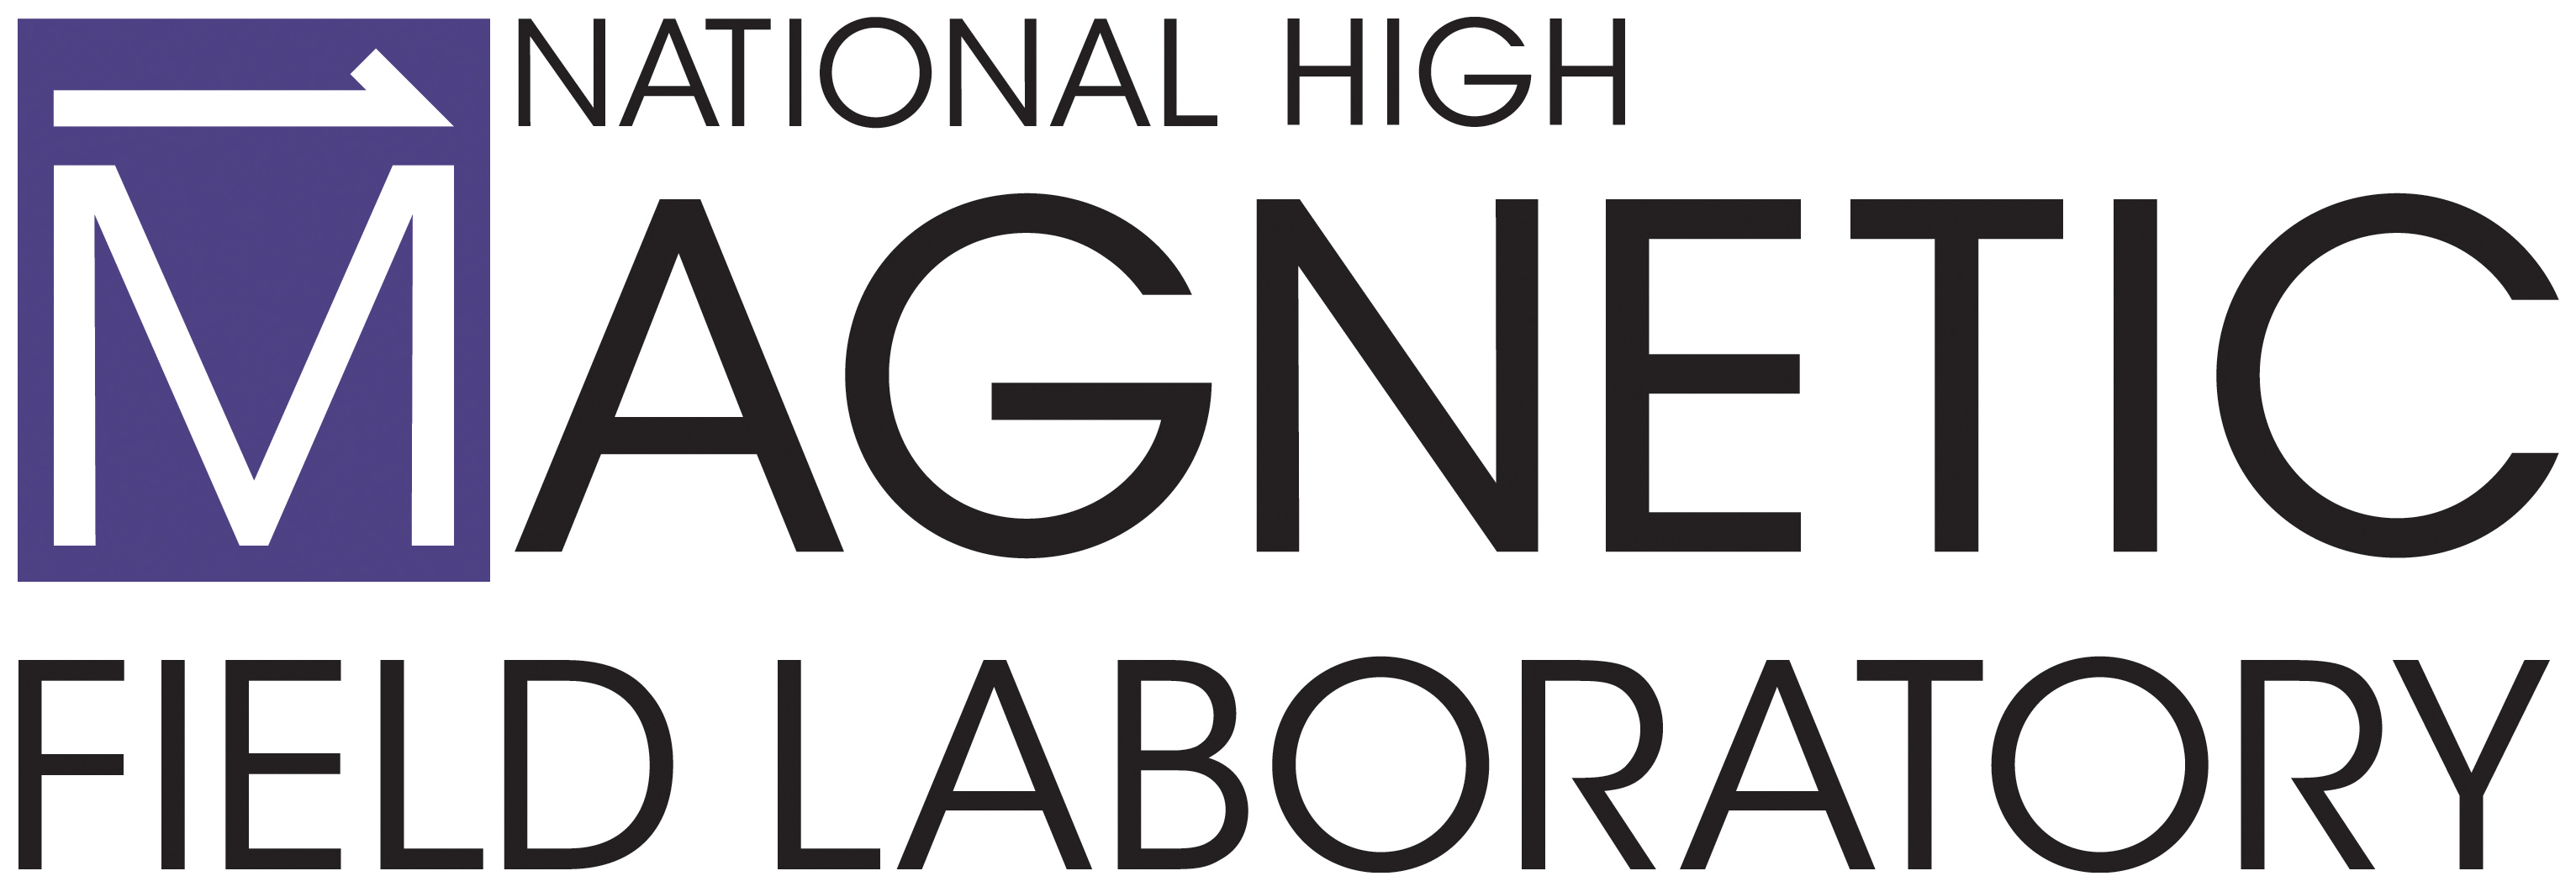 The national high magnetic field laboratory is located in Innovation Park